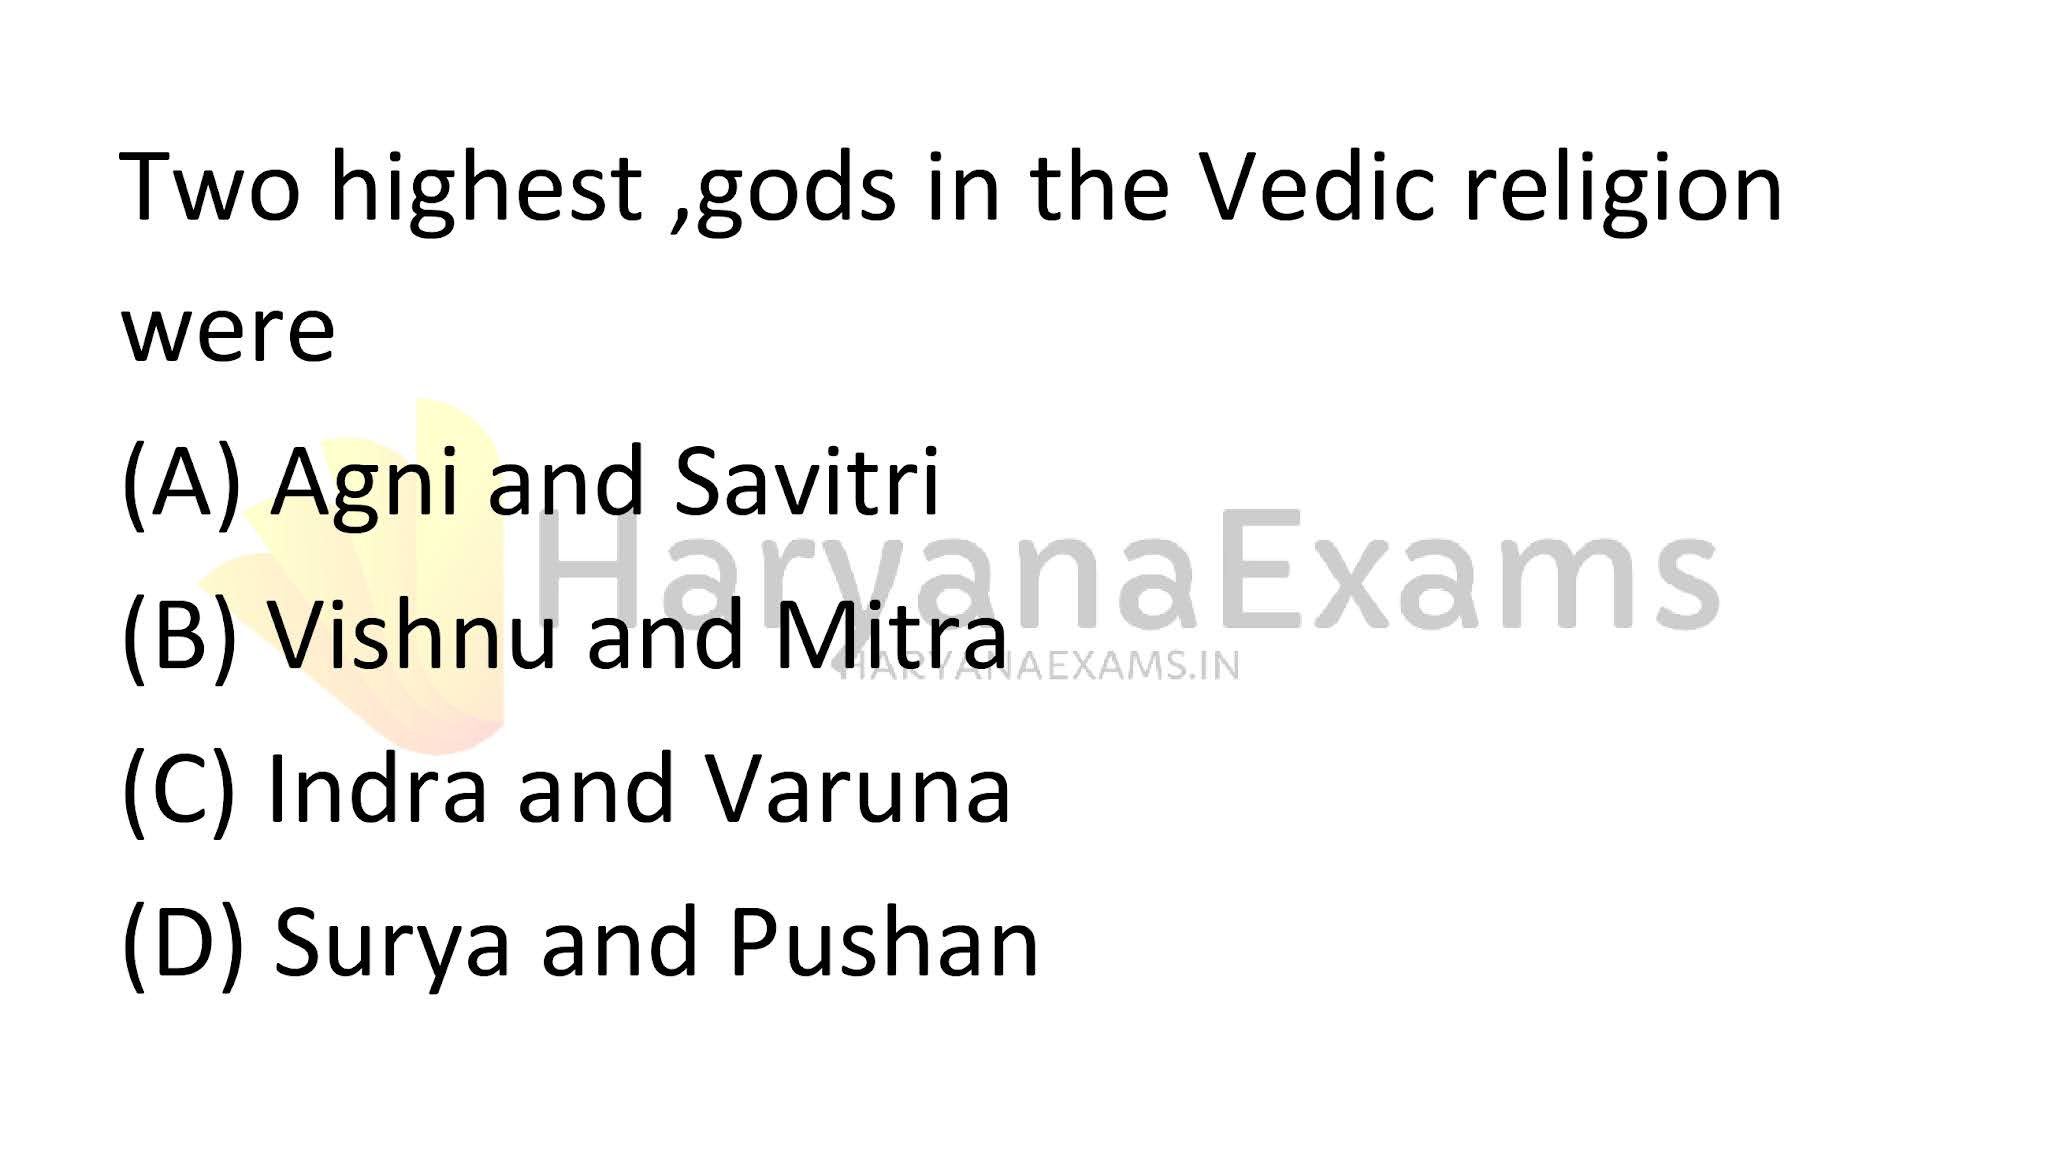 Two highest, gods in the Vedic religion were